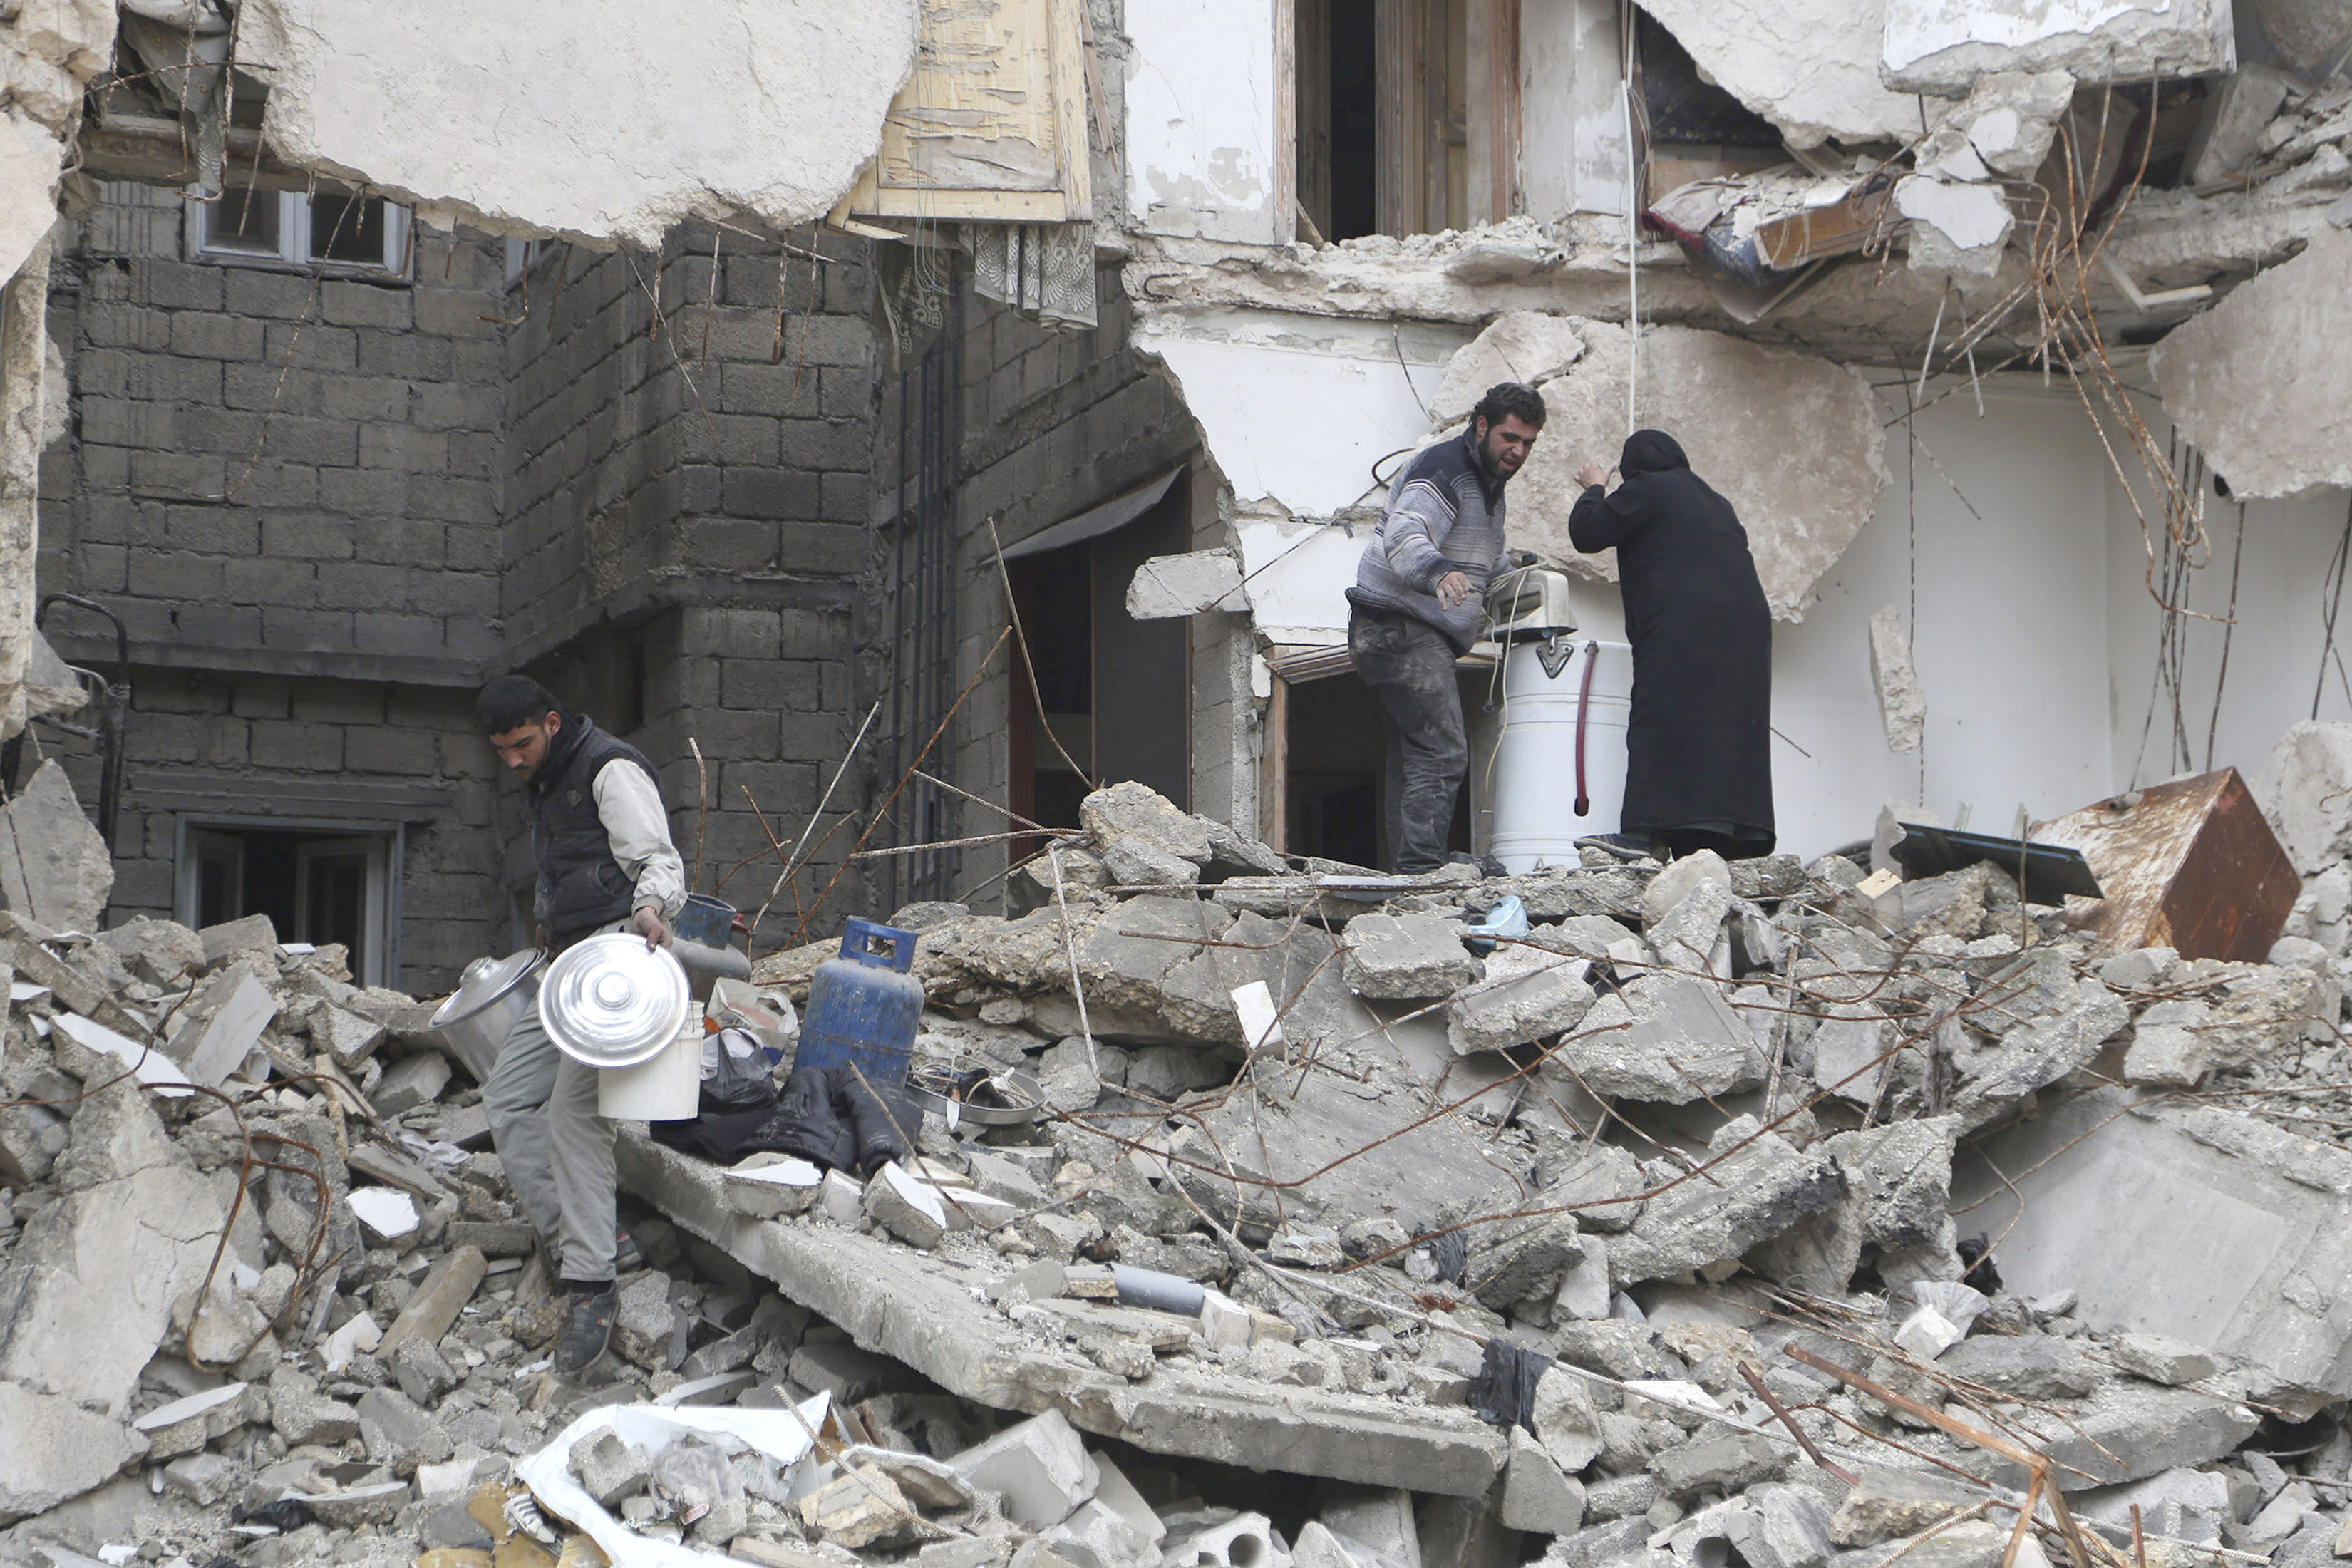 Residents look for belongings amid debris of a collapsed building in Aleppo December 31, 2014.